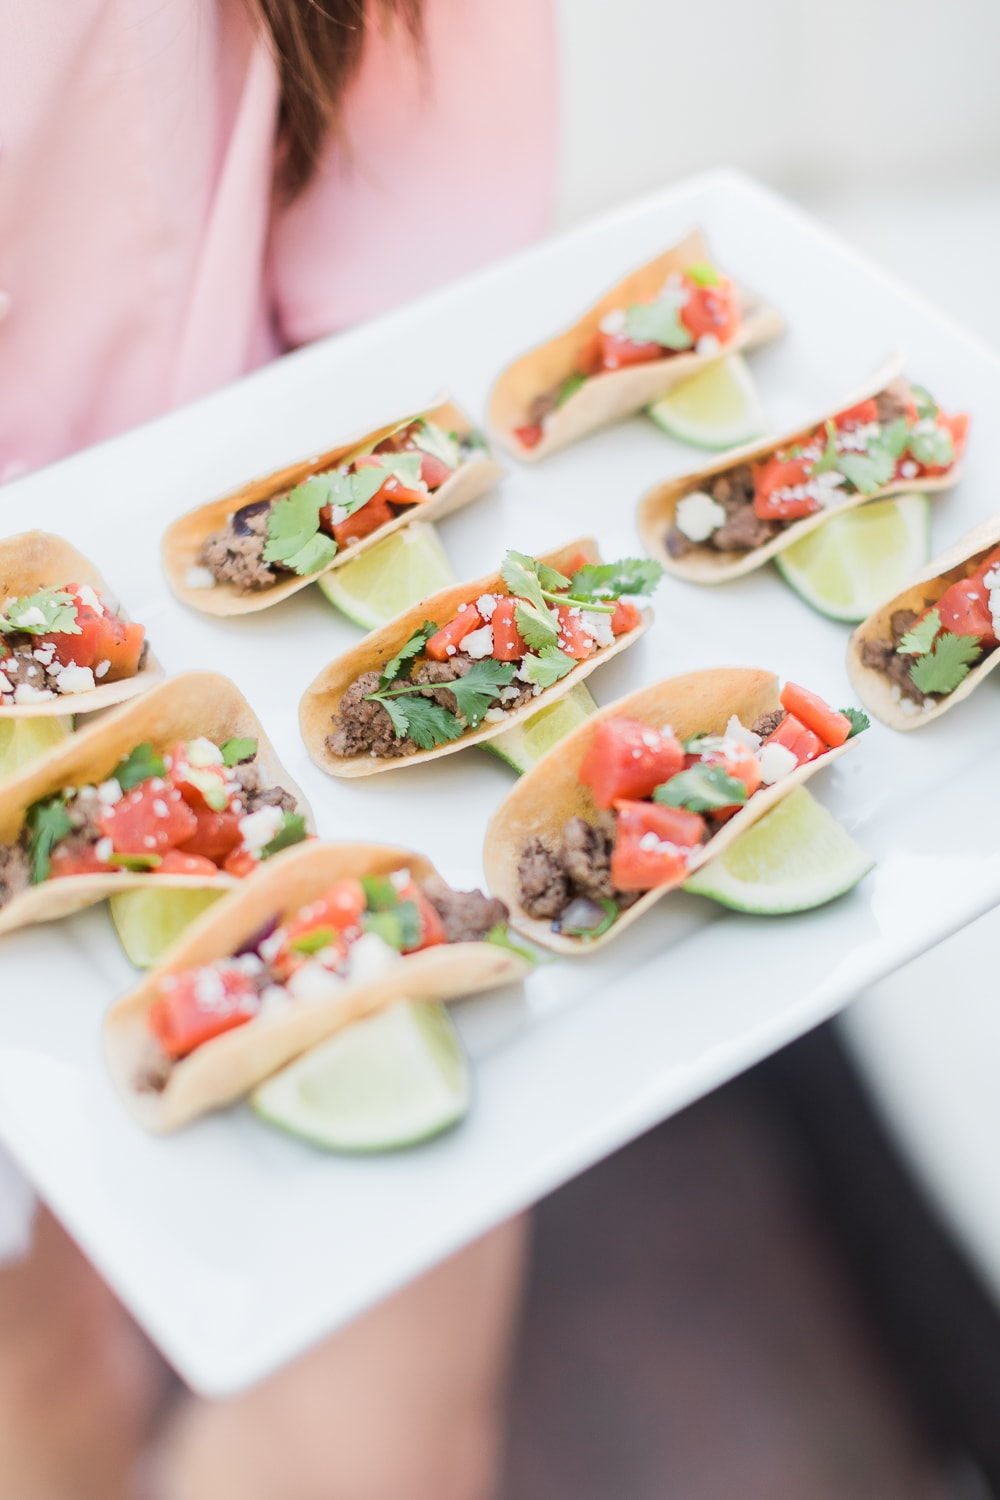 Mini taco bites recipe adapted from Pizzazzerie's Entertain in Style by blogger Stephanie Ziajka on Diary of a Debutante